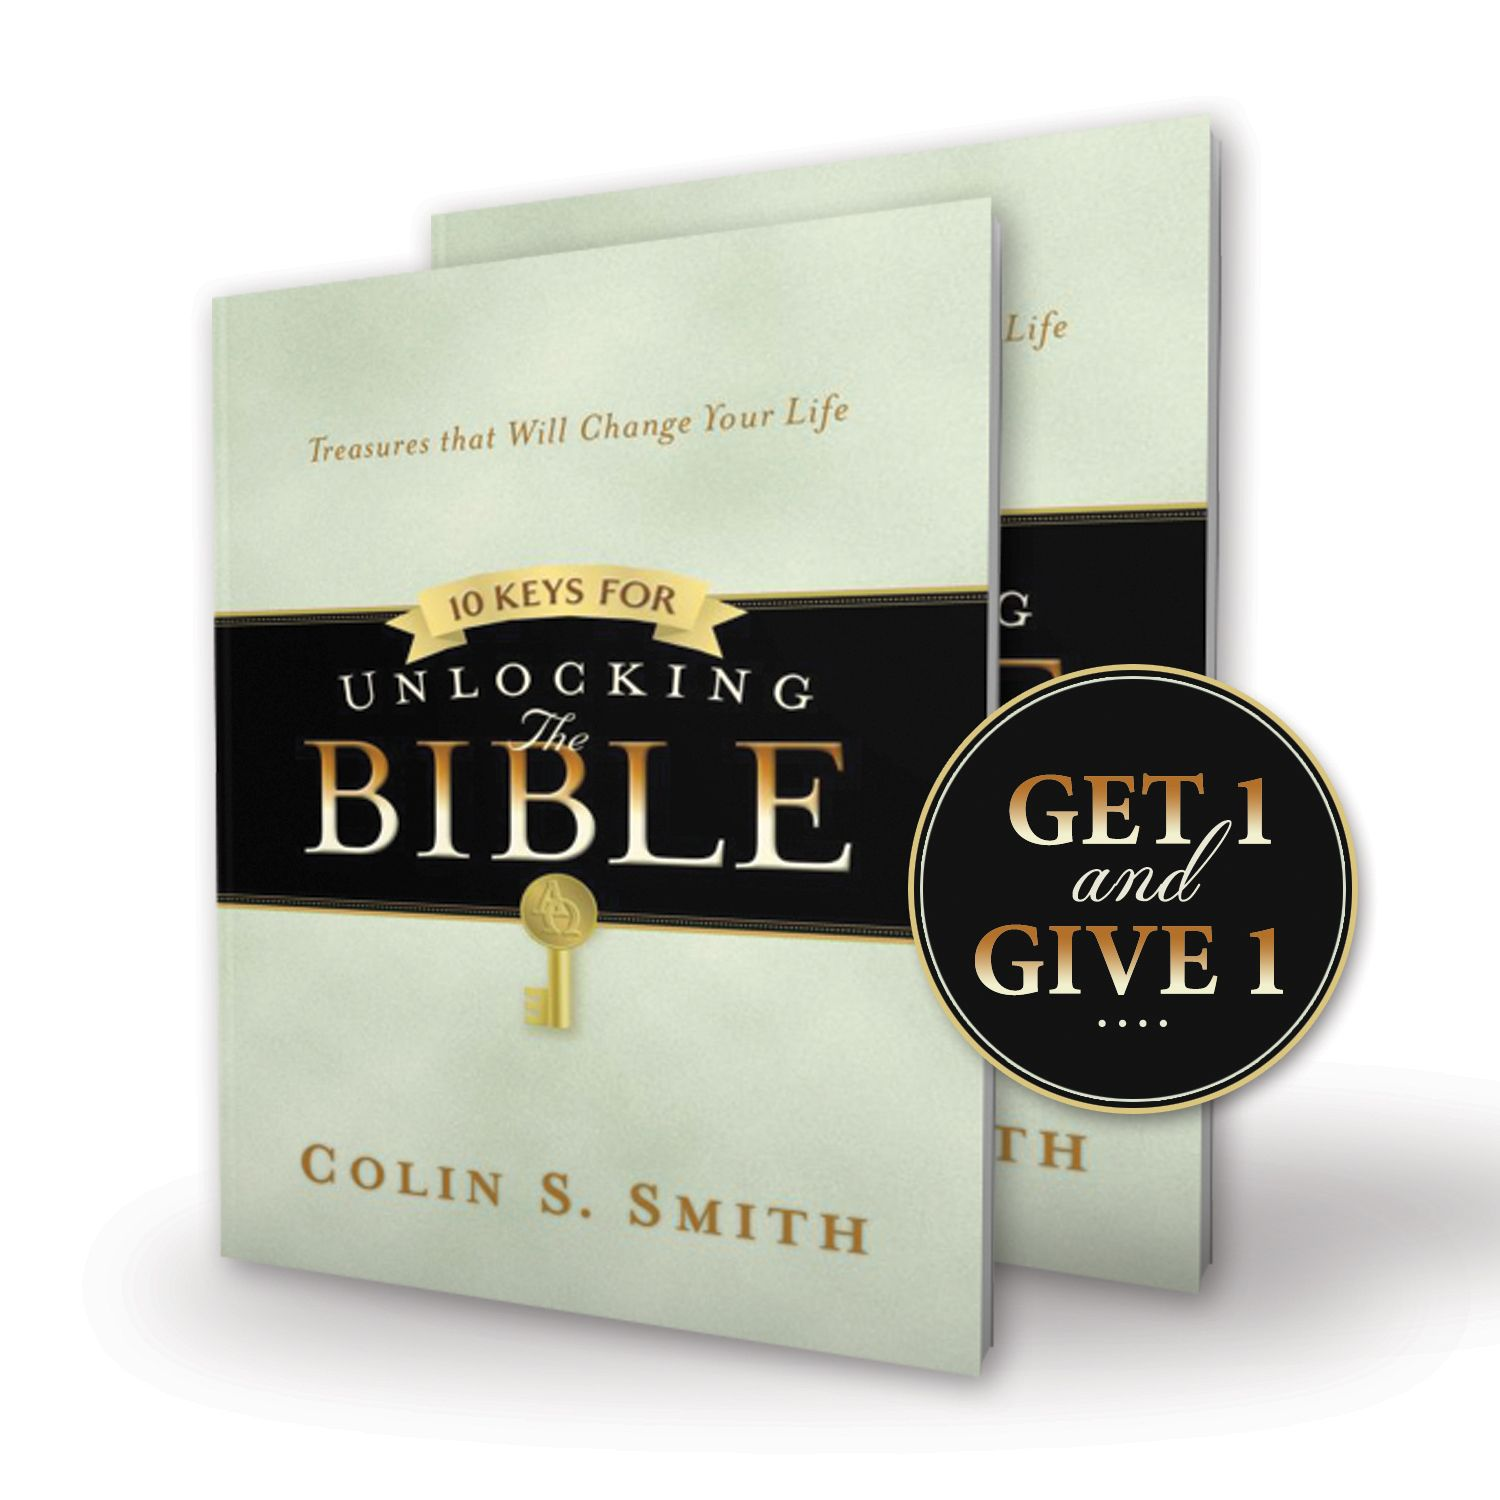 2 copies of 10 Keys for Unlocking the Bible Book – 1 to Get and 1 to Give Away